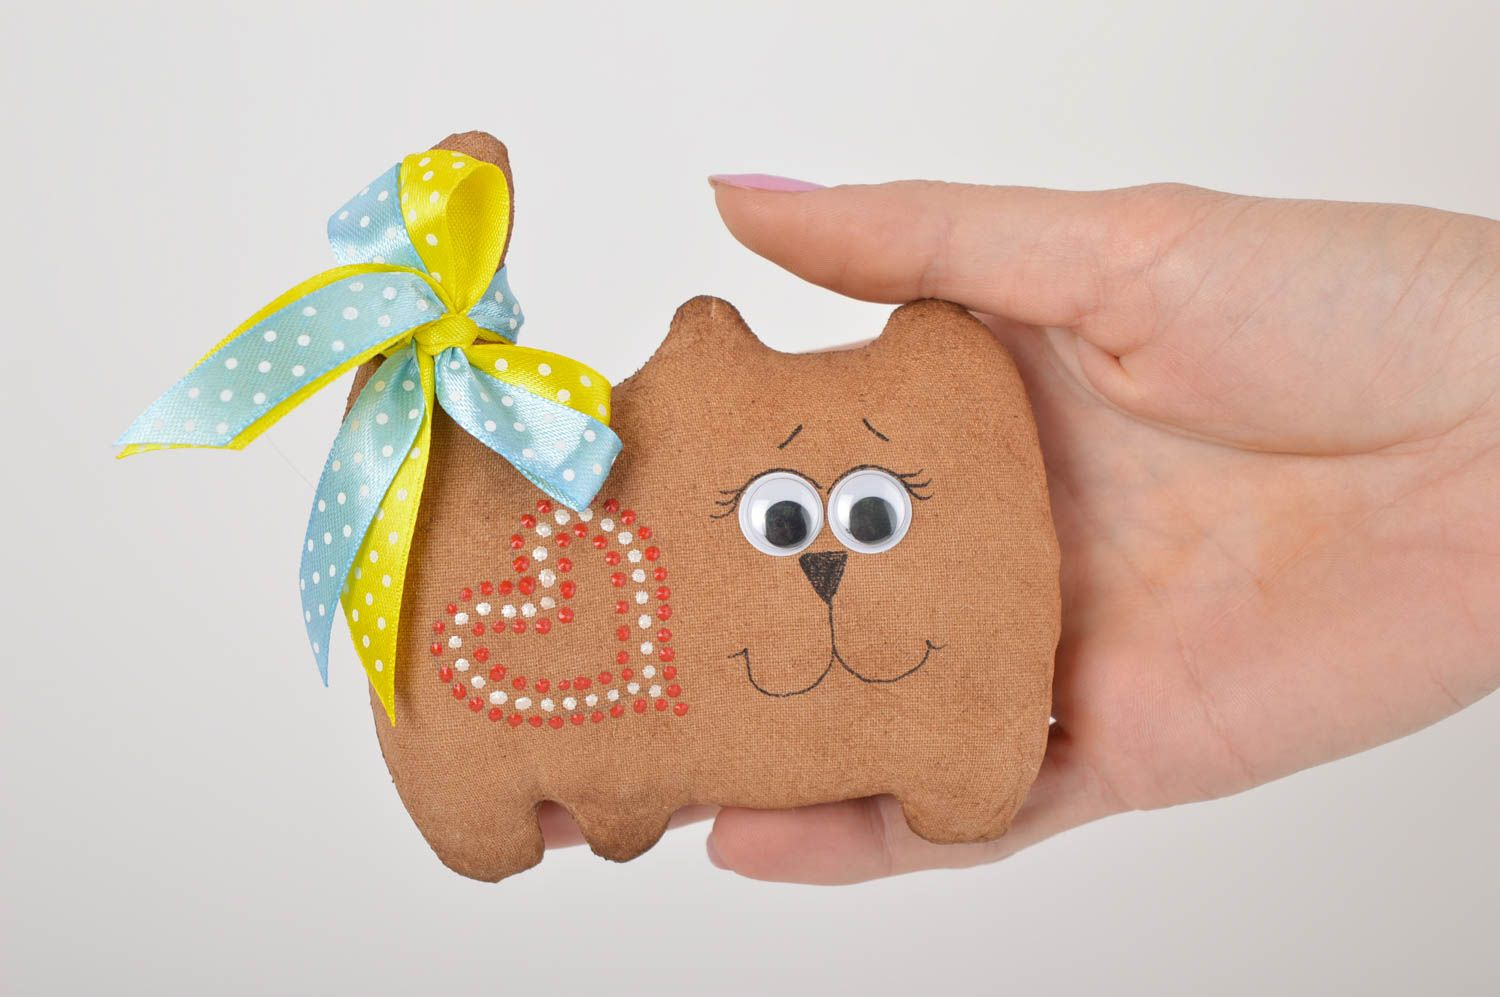 Handmade home decor fridge magnet soft toy animal toy for decorative use only photo 4